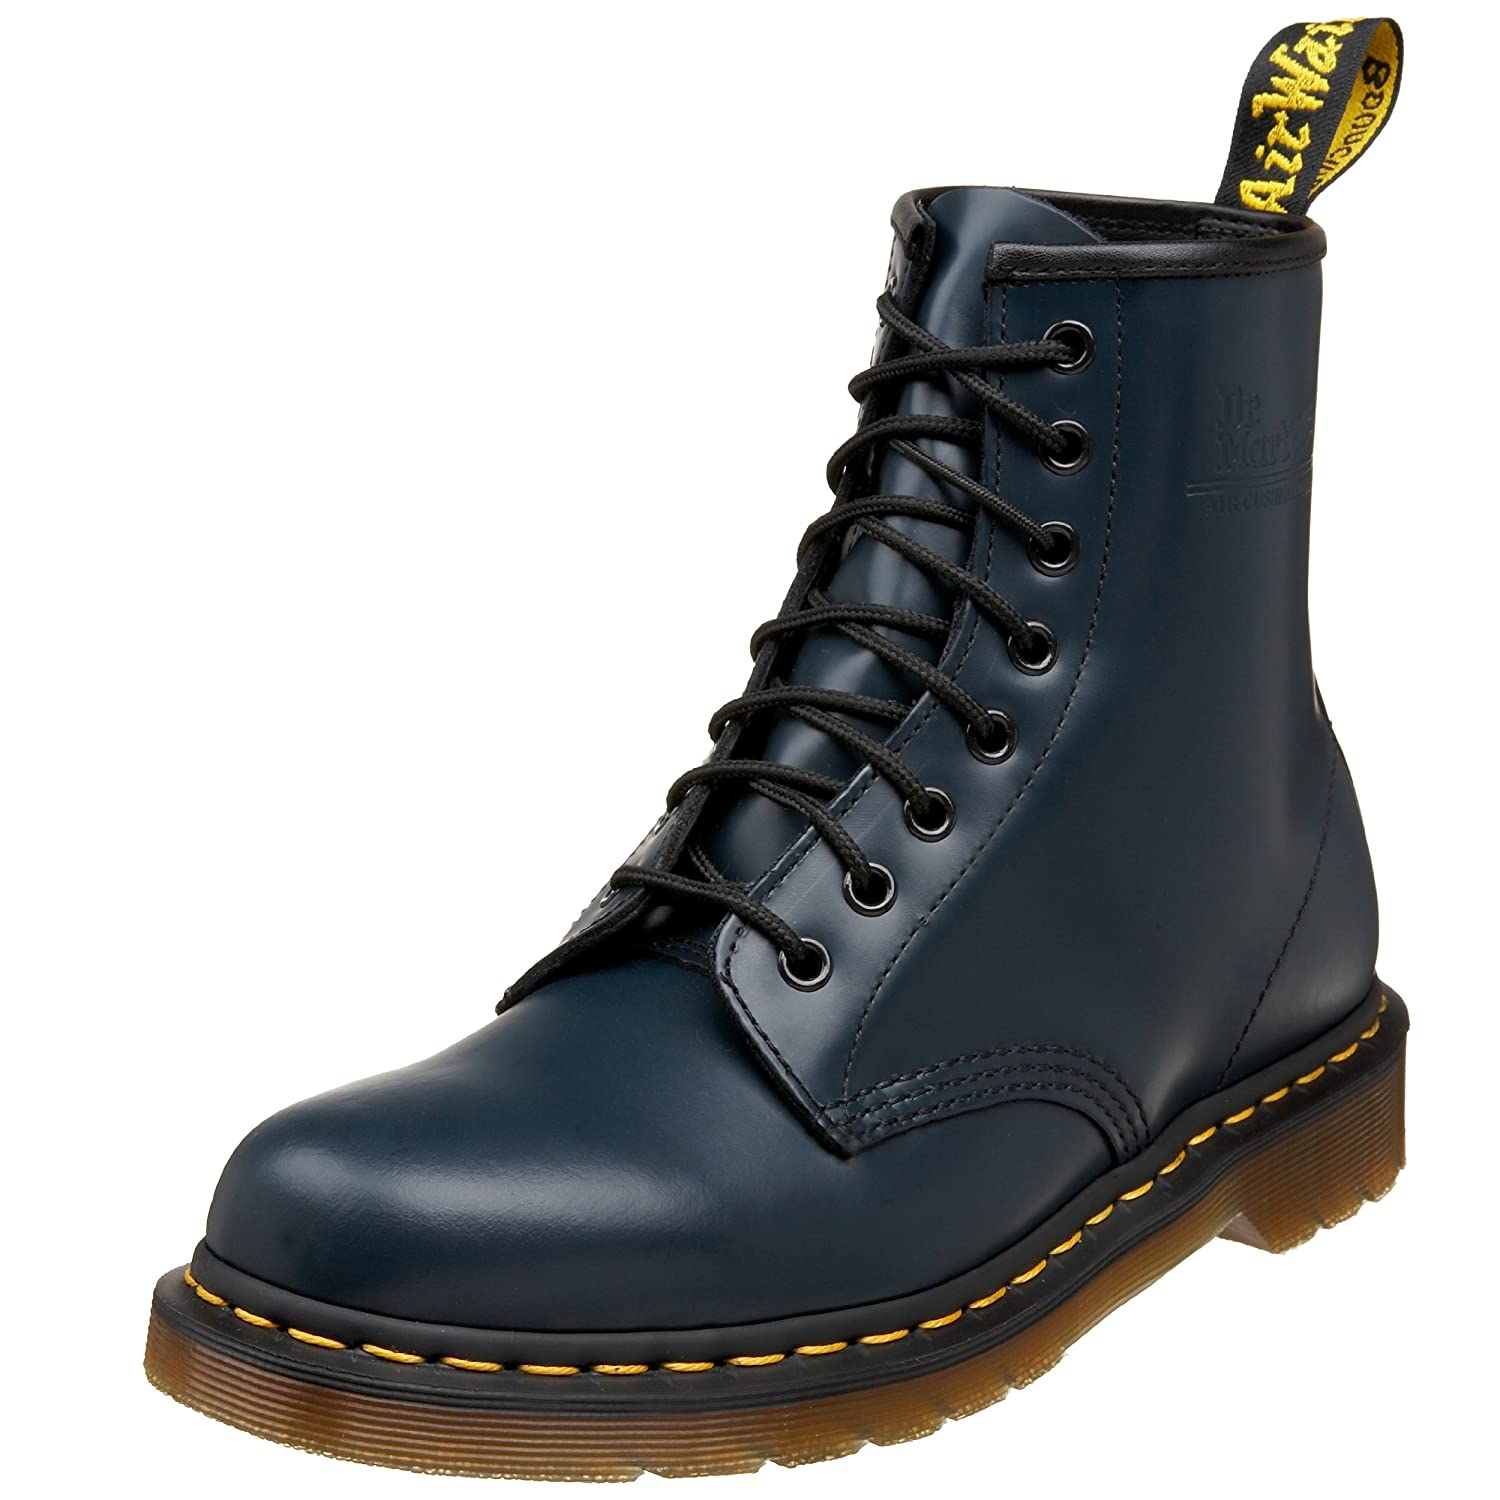 Dr. Martens Men's 1460 Combat Boot, 8.5 B(M) US Women/7.5 D(M) US Men B00178USAG 7 M US/ 5 UK|Navy Smooth Leather